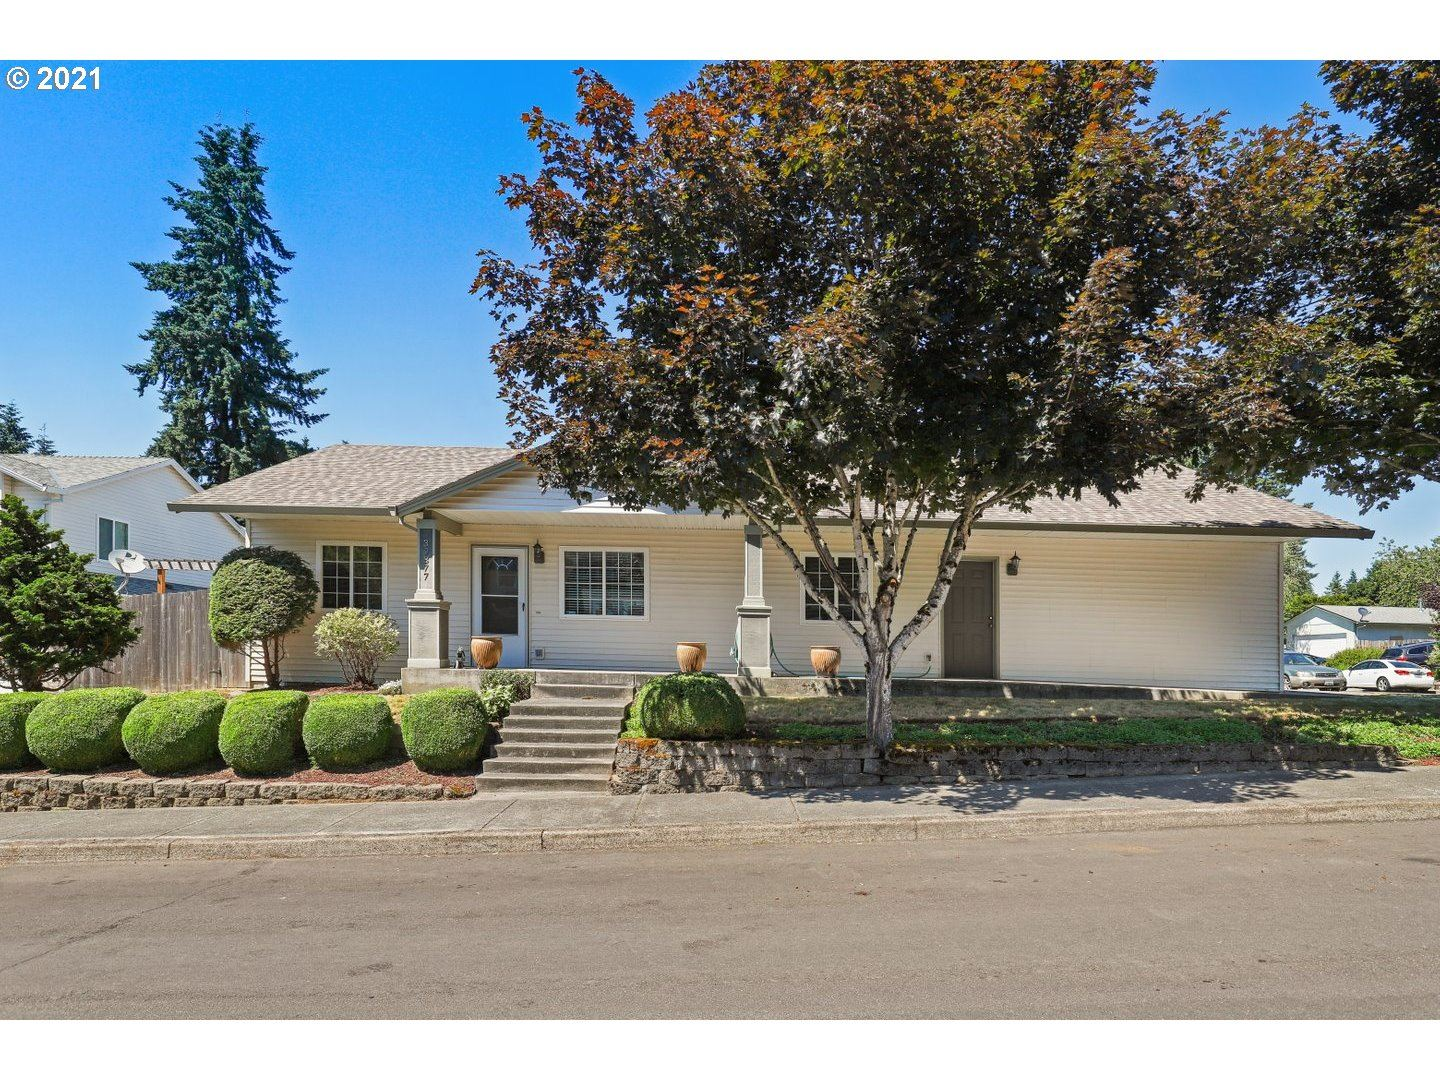 39877 CASSIDY CT, Sandy, OR 97055 - MLS#: 21552078